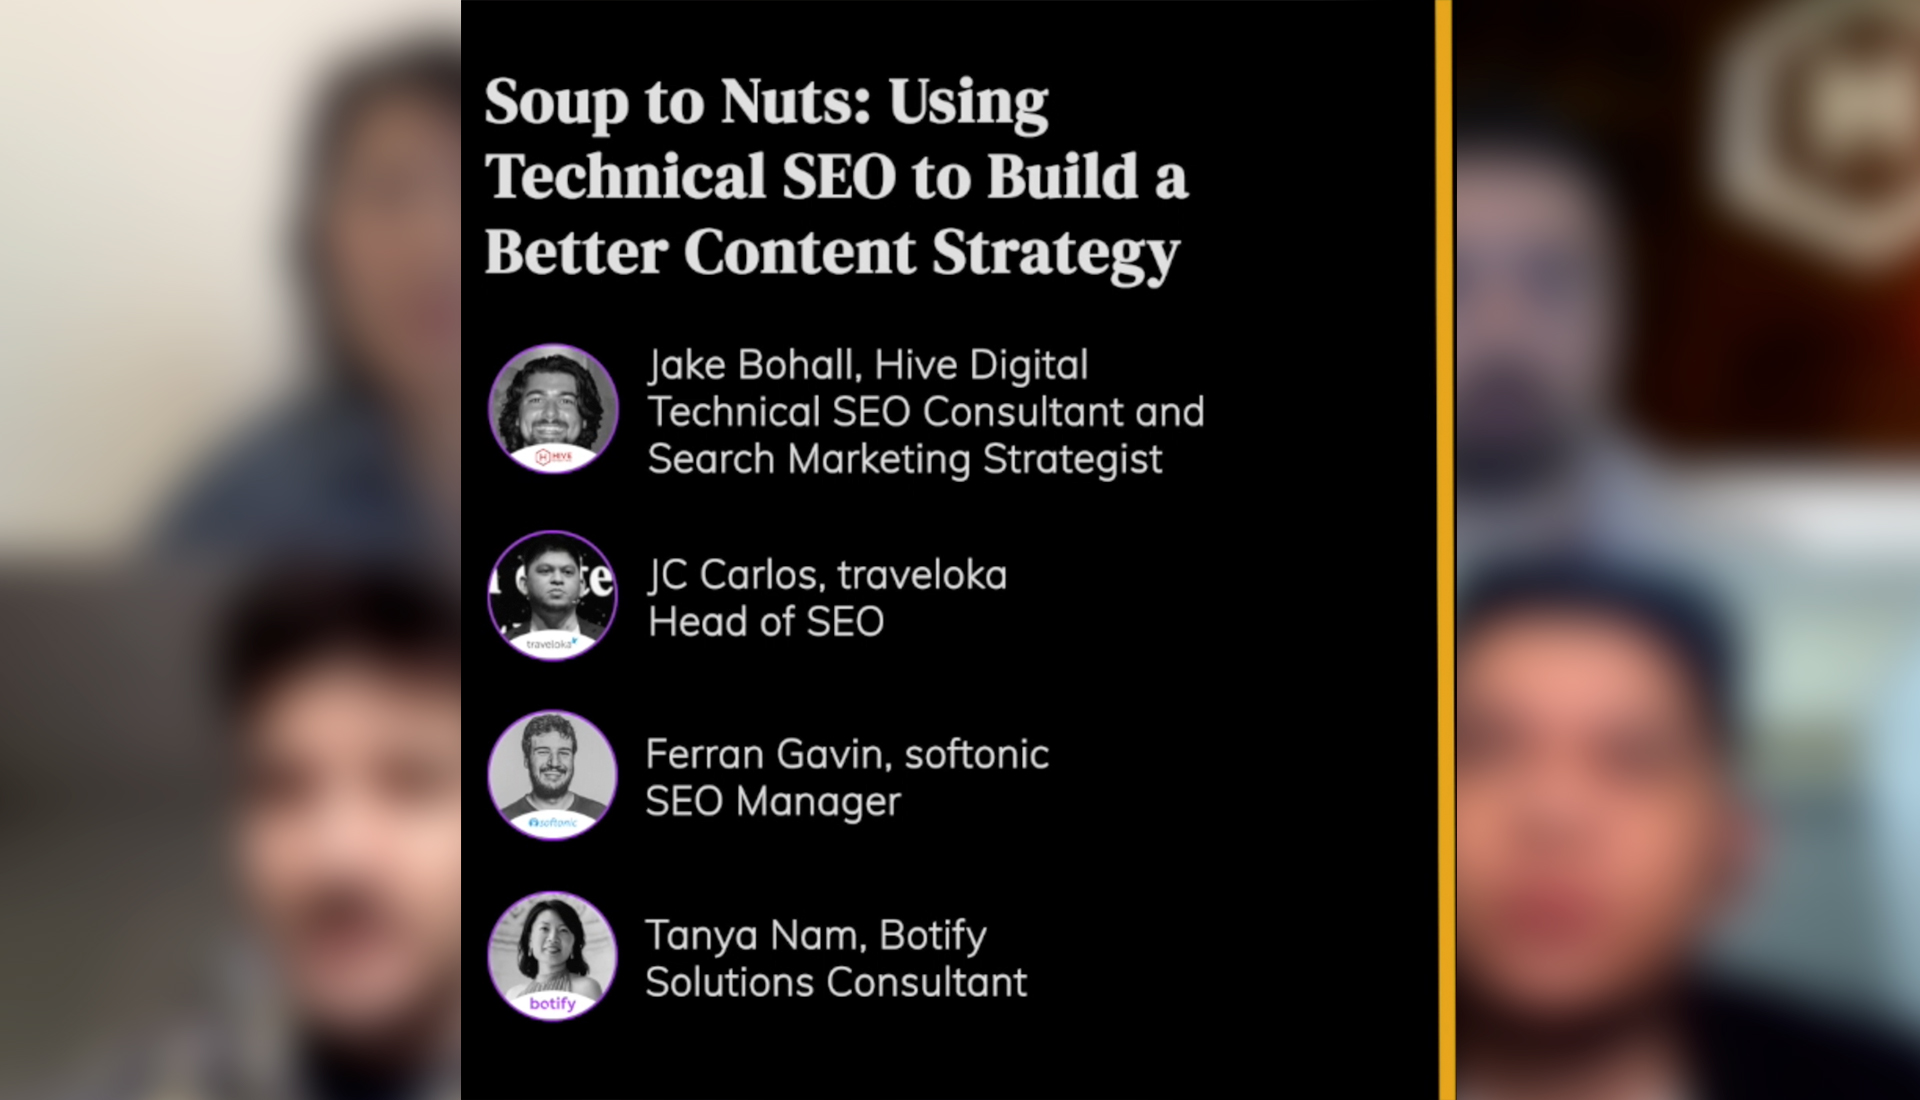 Soup to Nuts: Using Technical SEO to Build a Better Content Strategy